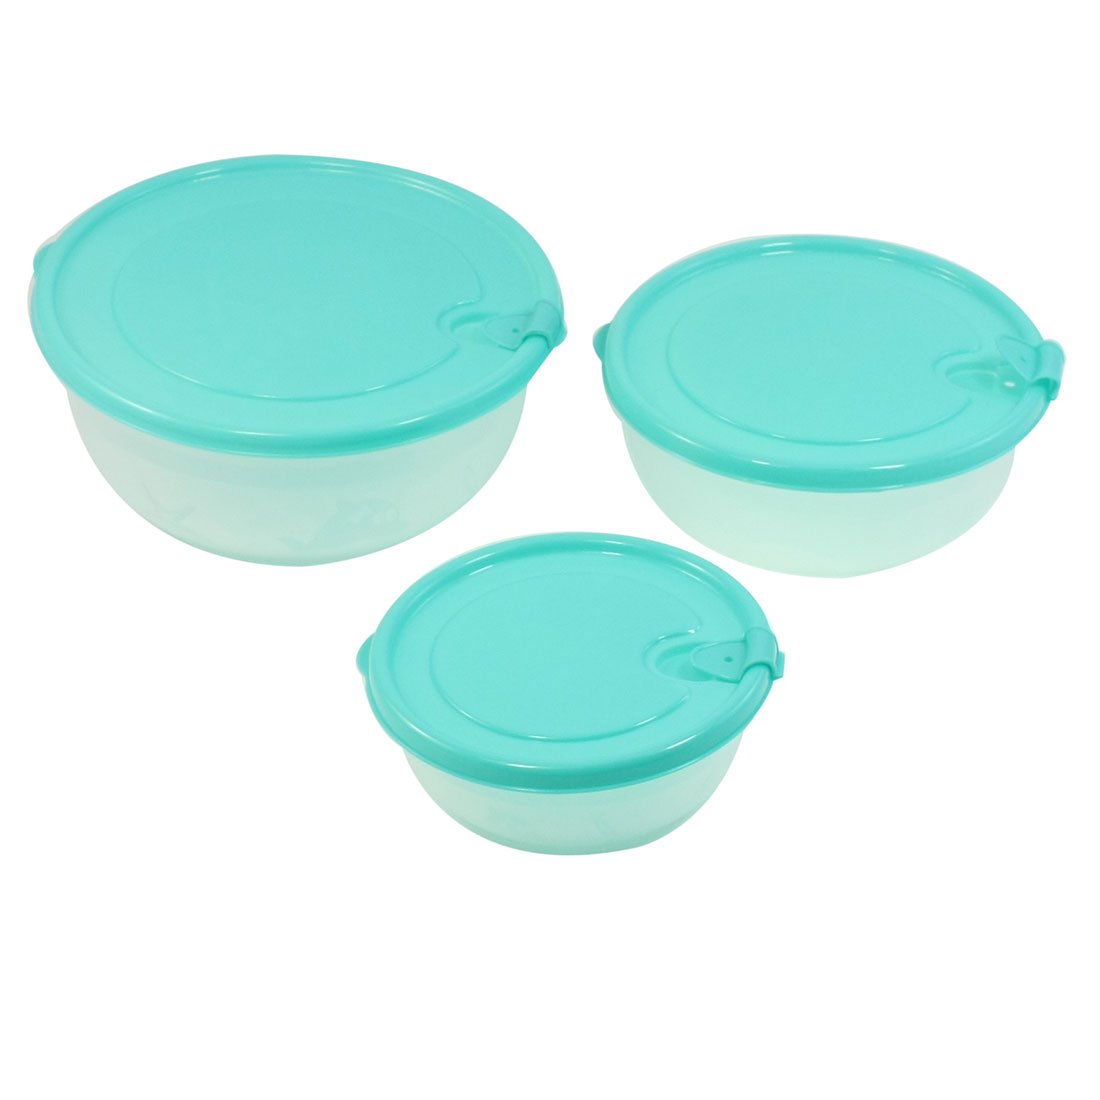 Camping Travel Flower Print Lid Clear Cyan Refreshing Case Crisper Set 3 Pcs